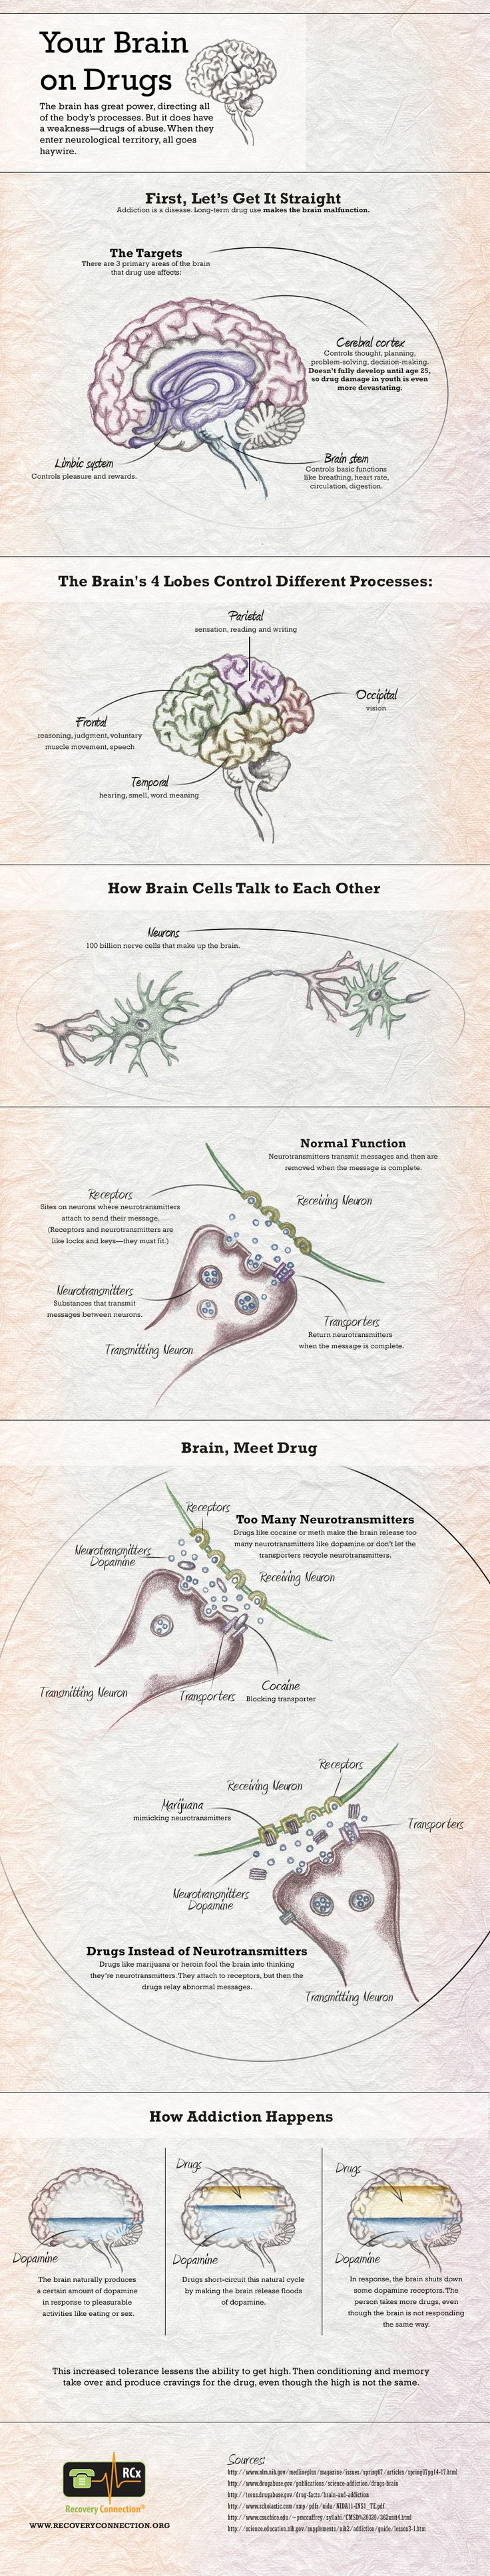 Your #Brain on Drugs - What happens - A must see #infographic